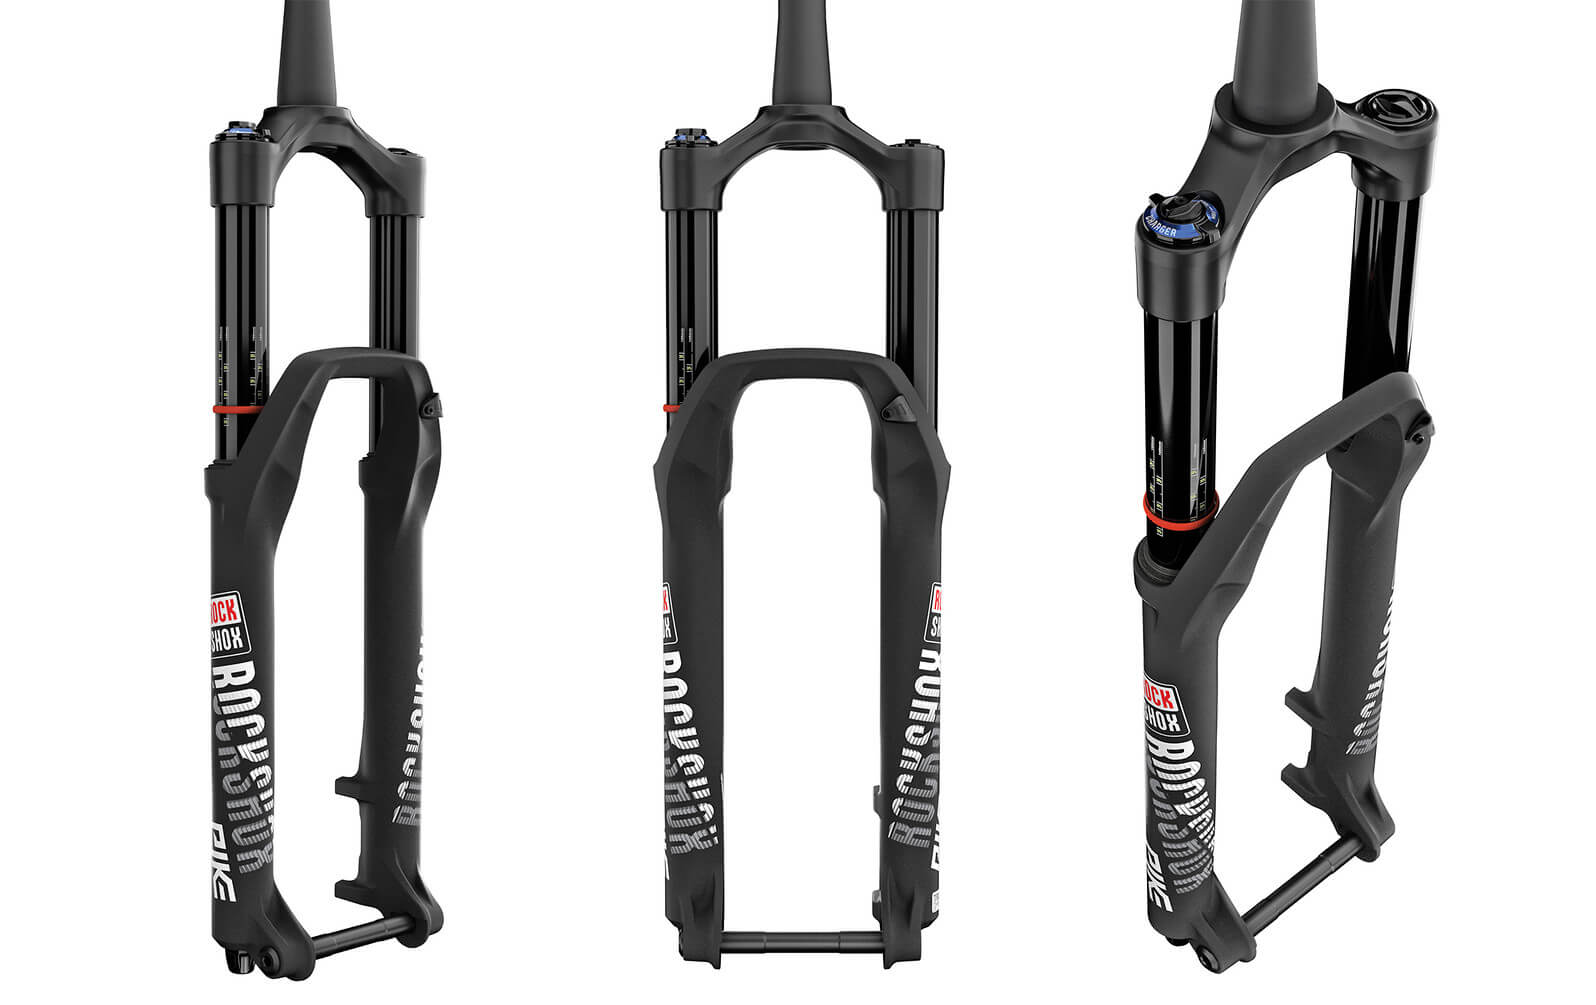 Rockshox Lyrik vs Pike